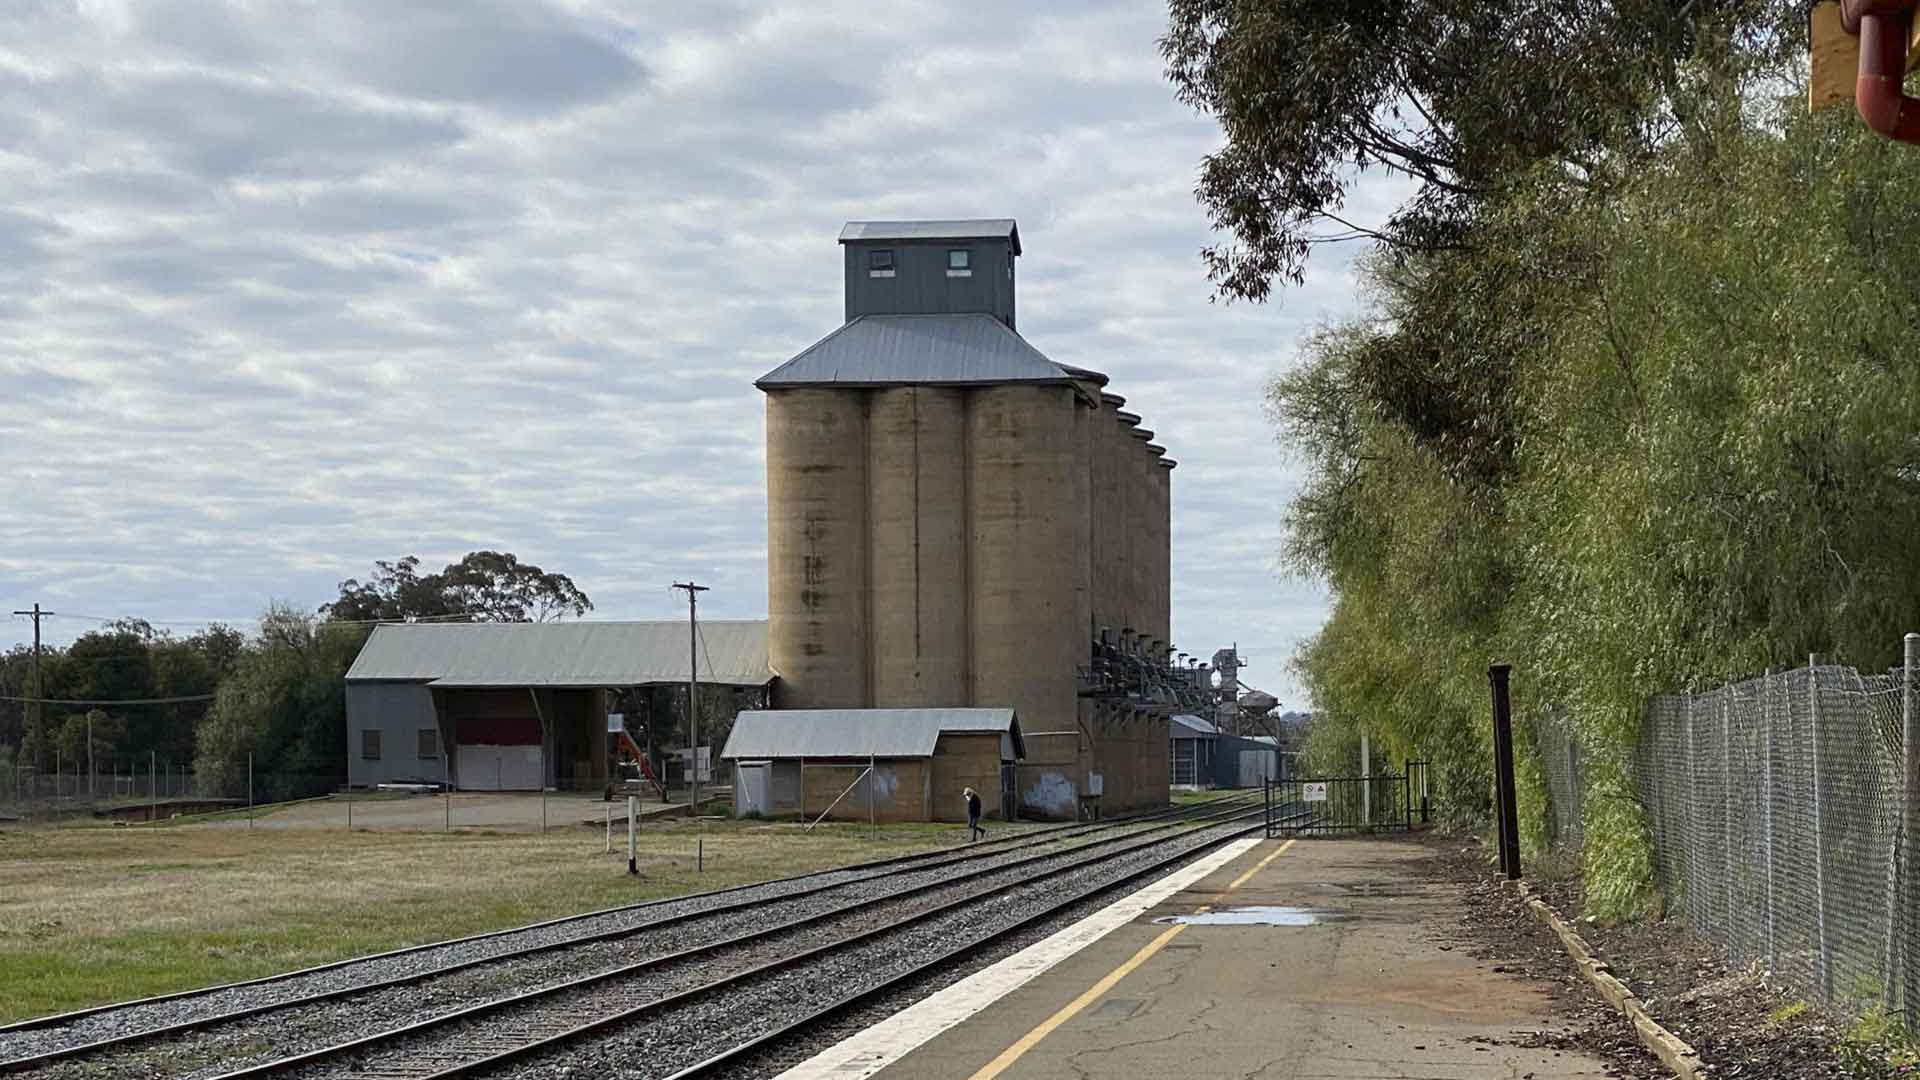 The Old Station Located in Australia